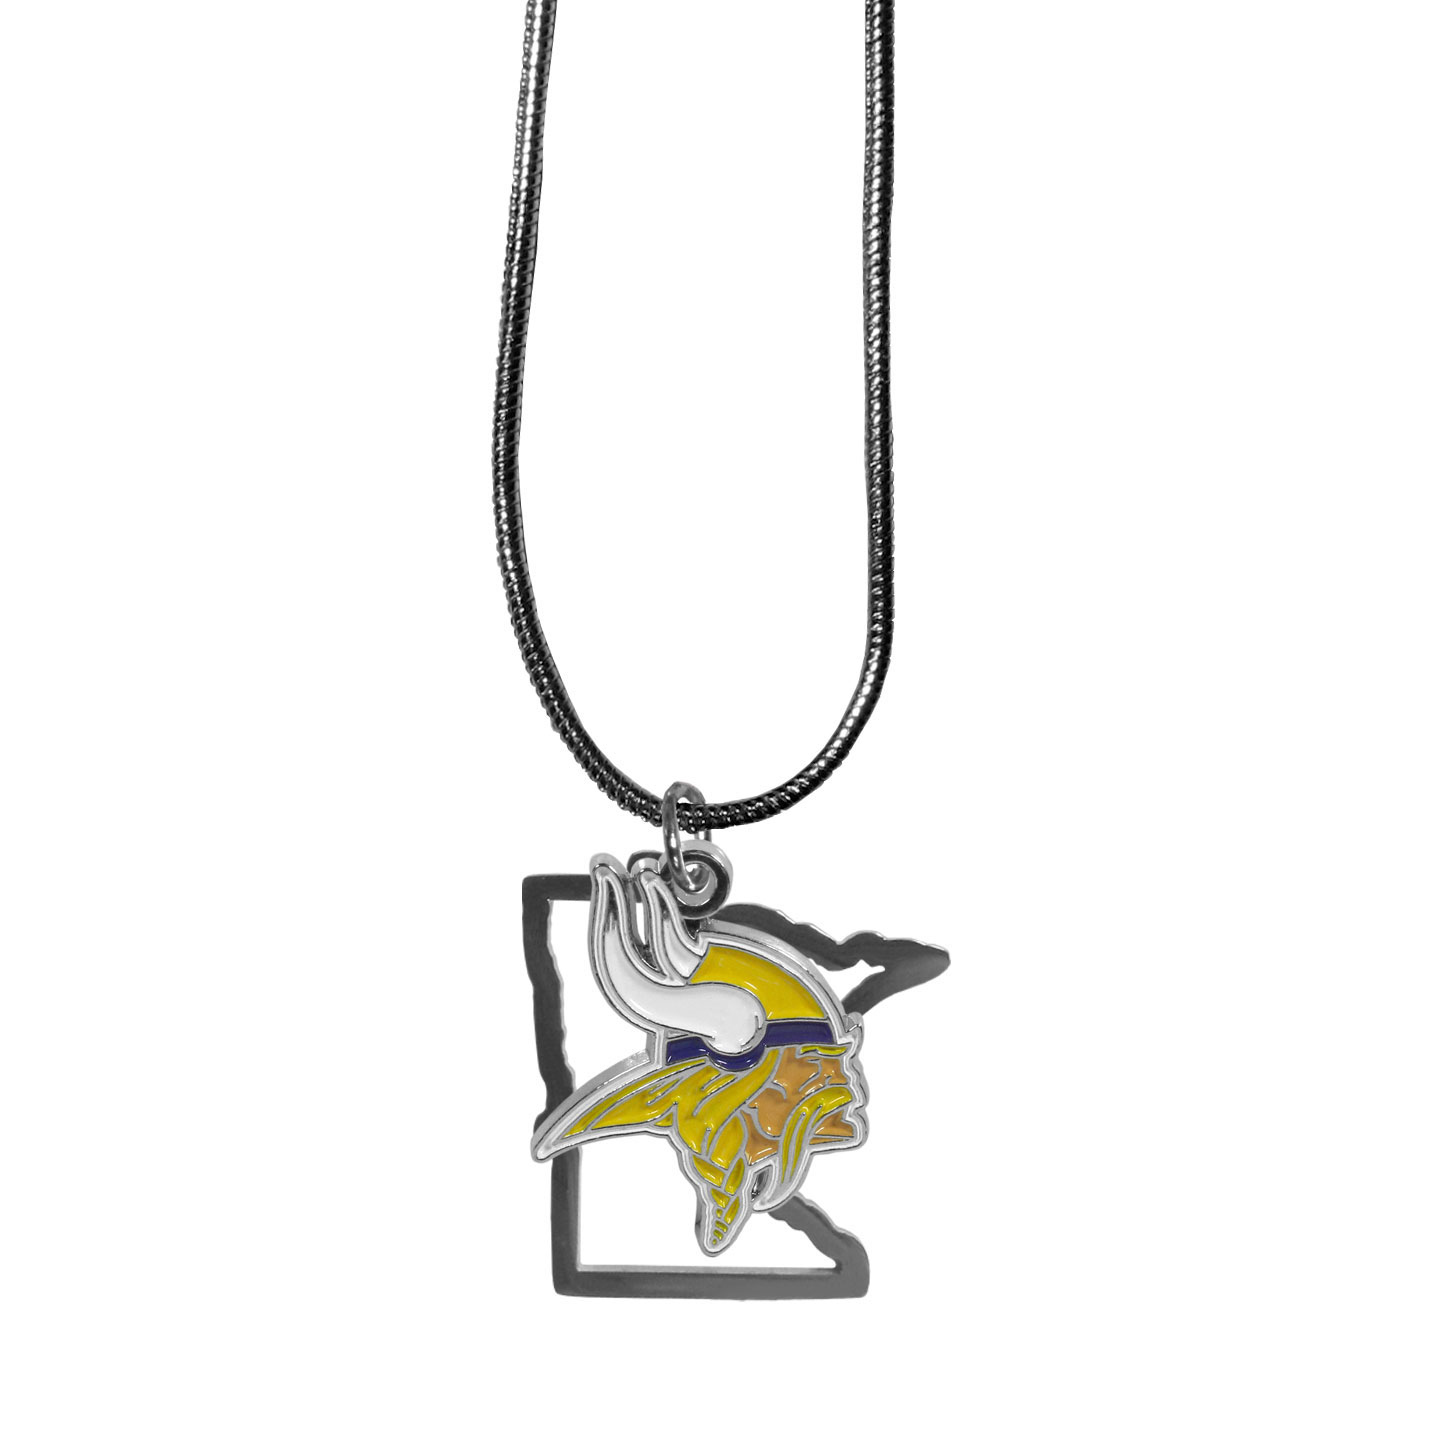 Minnesota Vikings State Charm Necklace - Get in on the trend! State themes are a trend that just keeps getting more popular and these necklaces take the state style and give it a sporty twist with a Minnesota Vikings added to the state outline charm. The come on a snake chain that is 22 inches long.